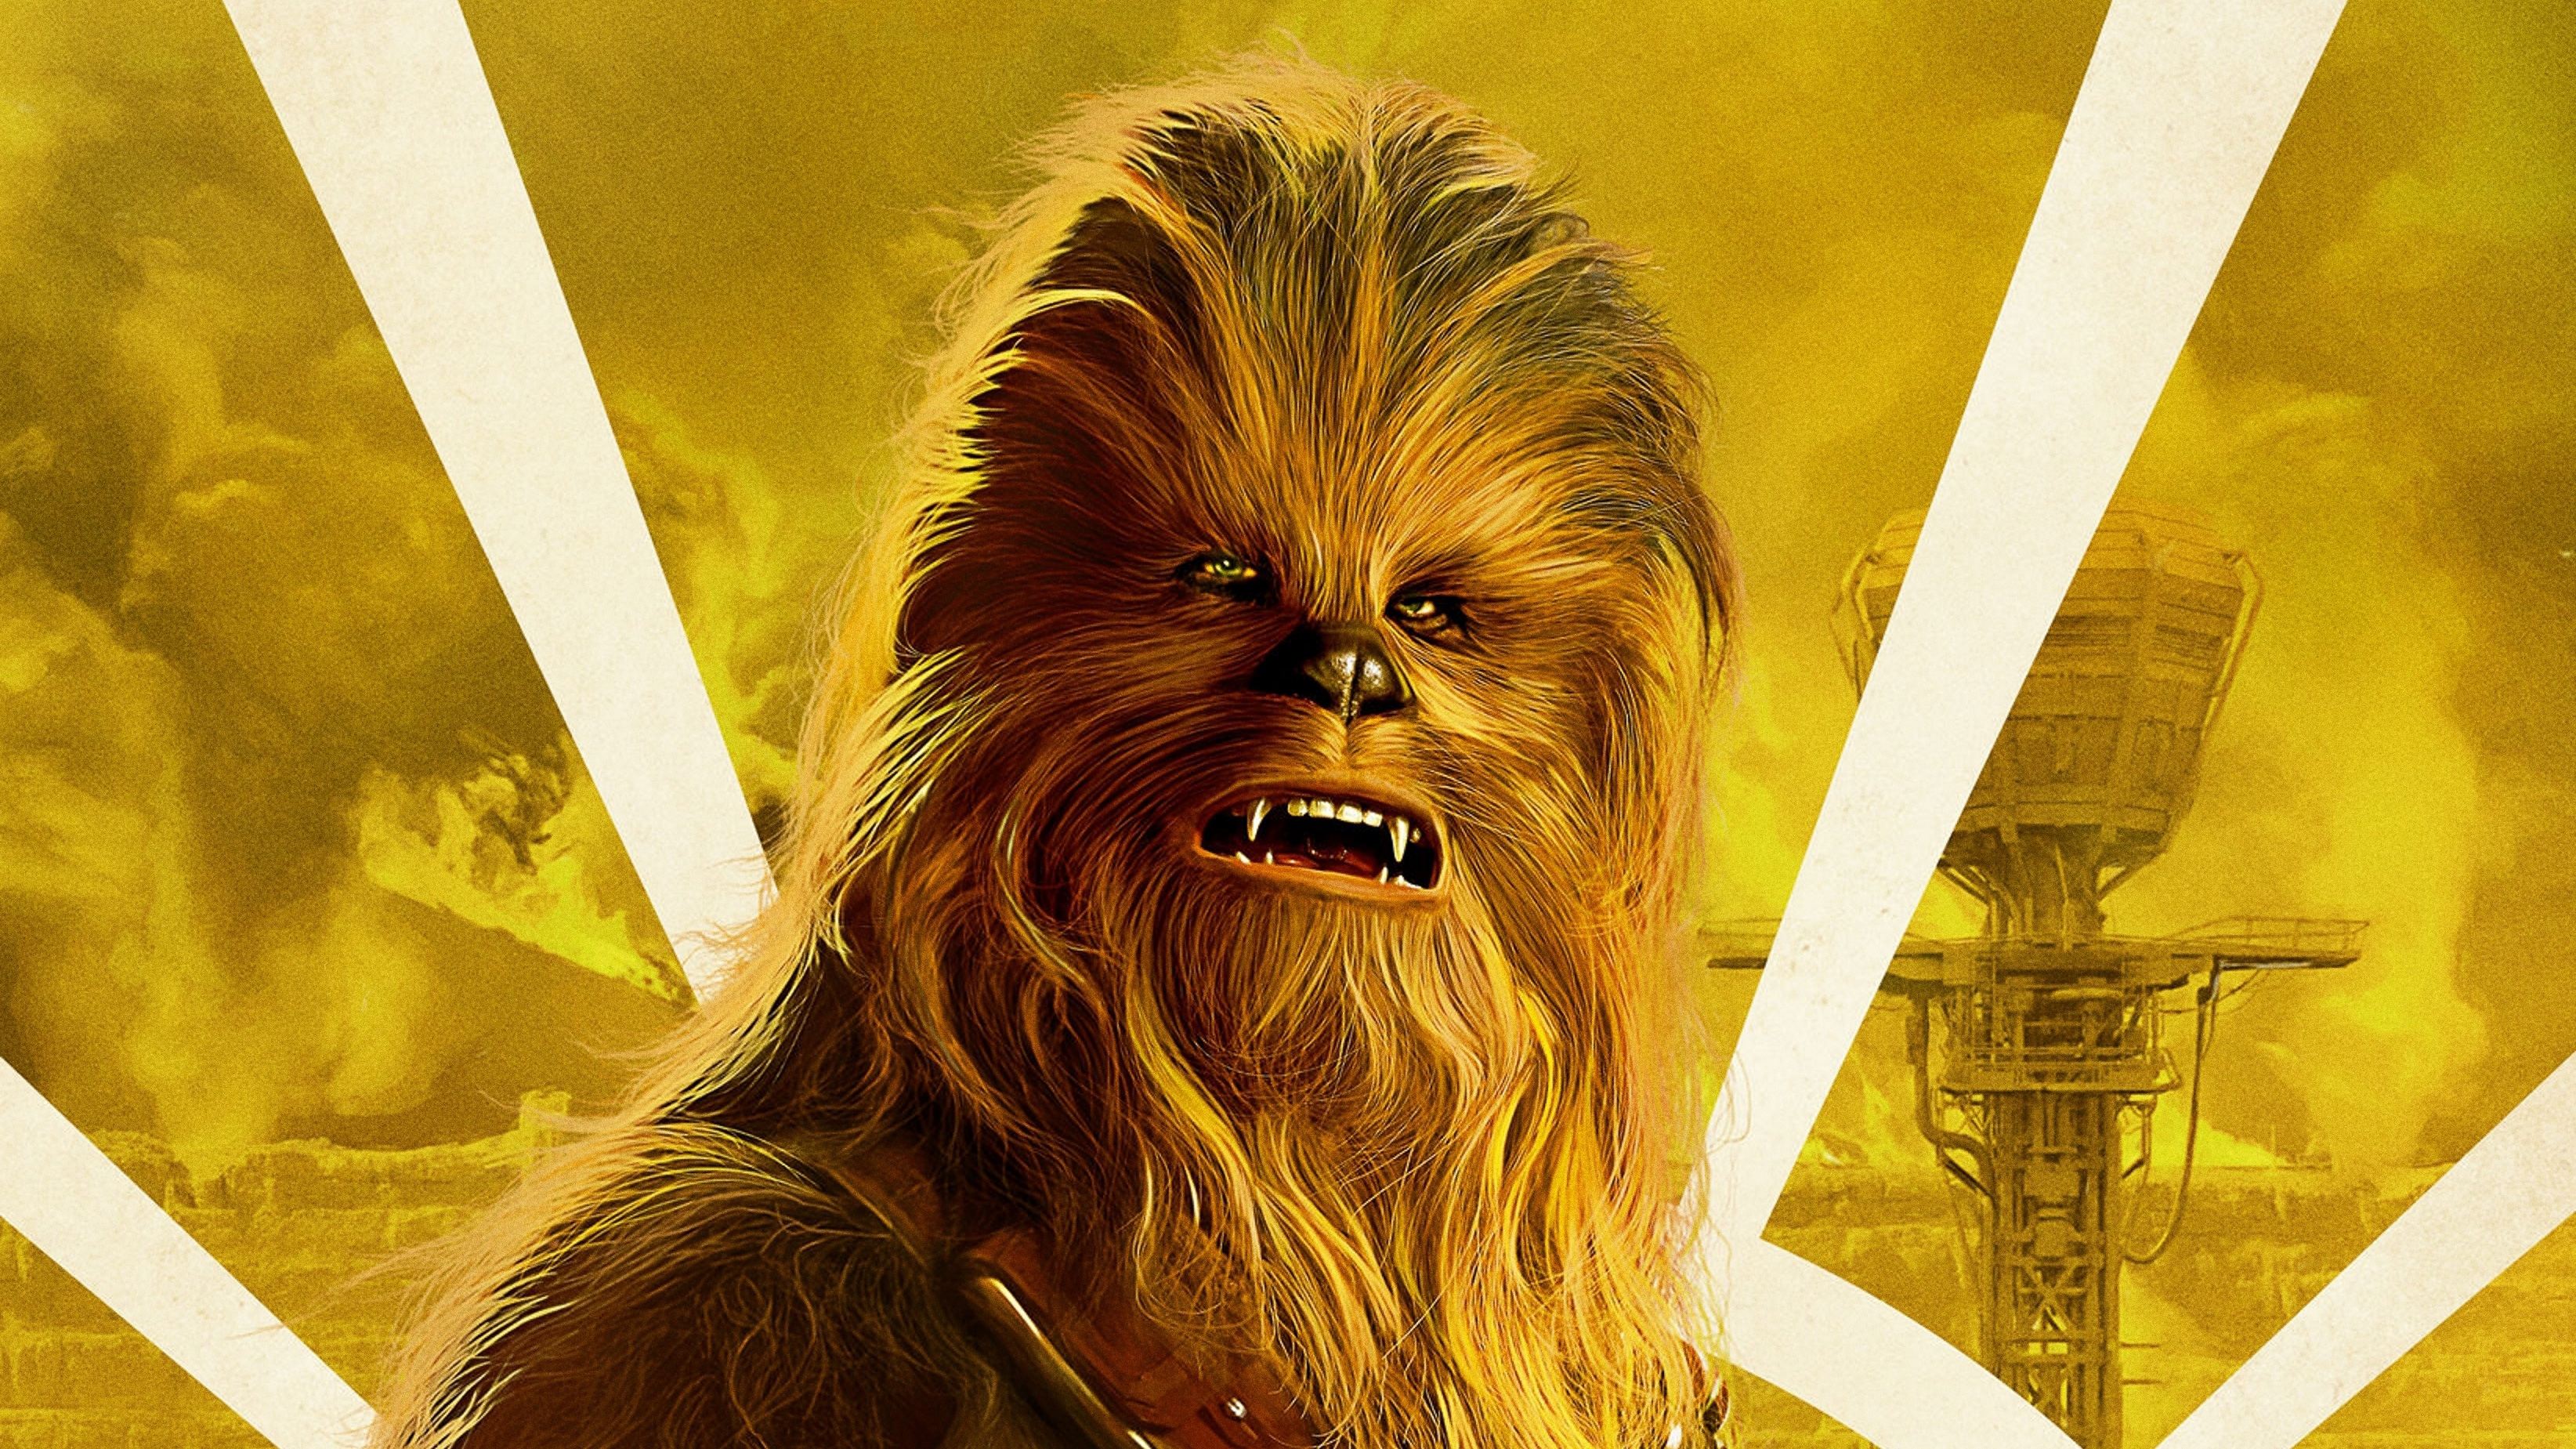 Chewbacca In Solo A Star Wars Story Movie, Hd Movies, 4K -3674